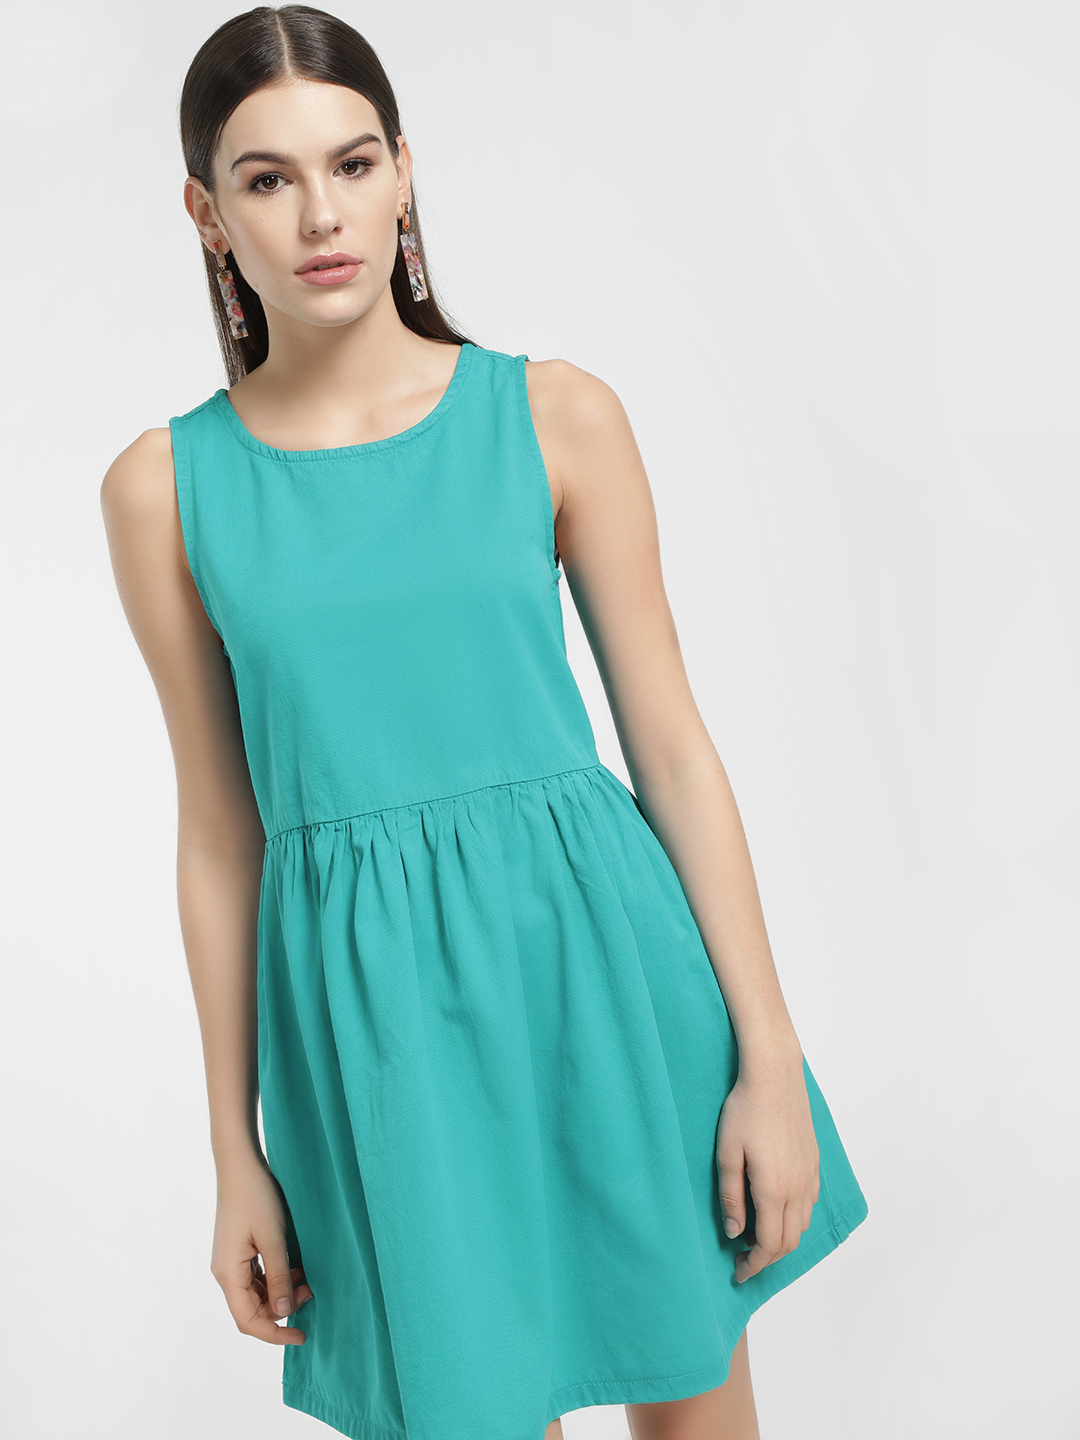 K Denim Green KOOVS Sleeveless Skater Denim Dress 1